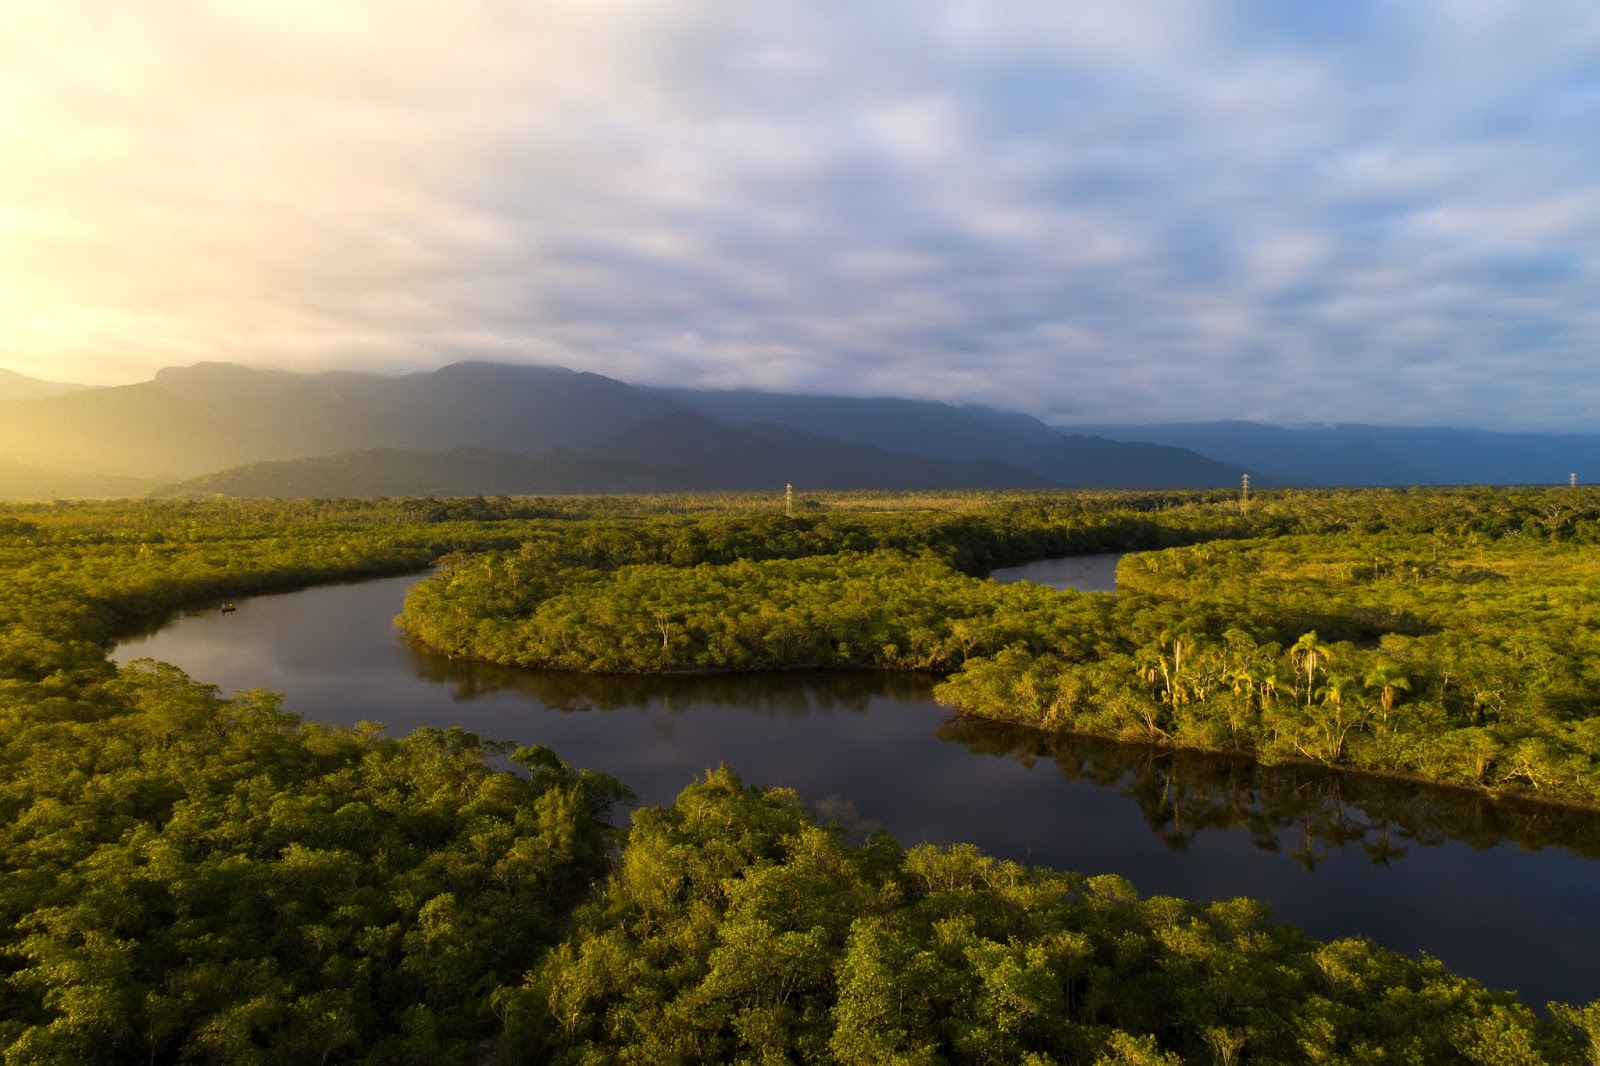 Vegan Blockchain Company Bought 15,000 Acres Of Amazon Rainforest For Preservation